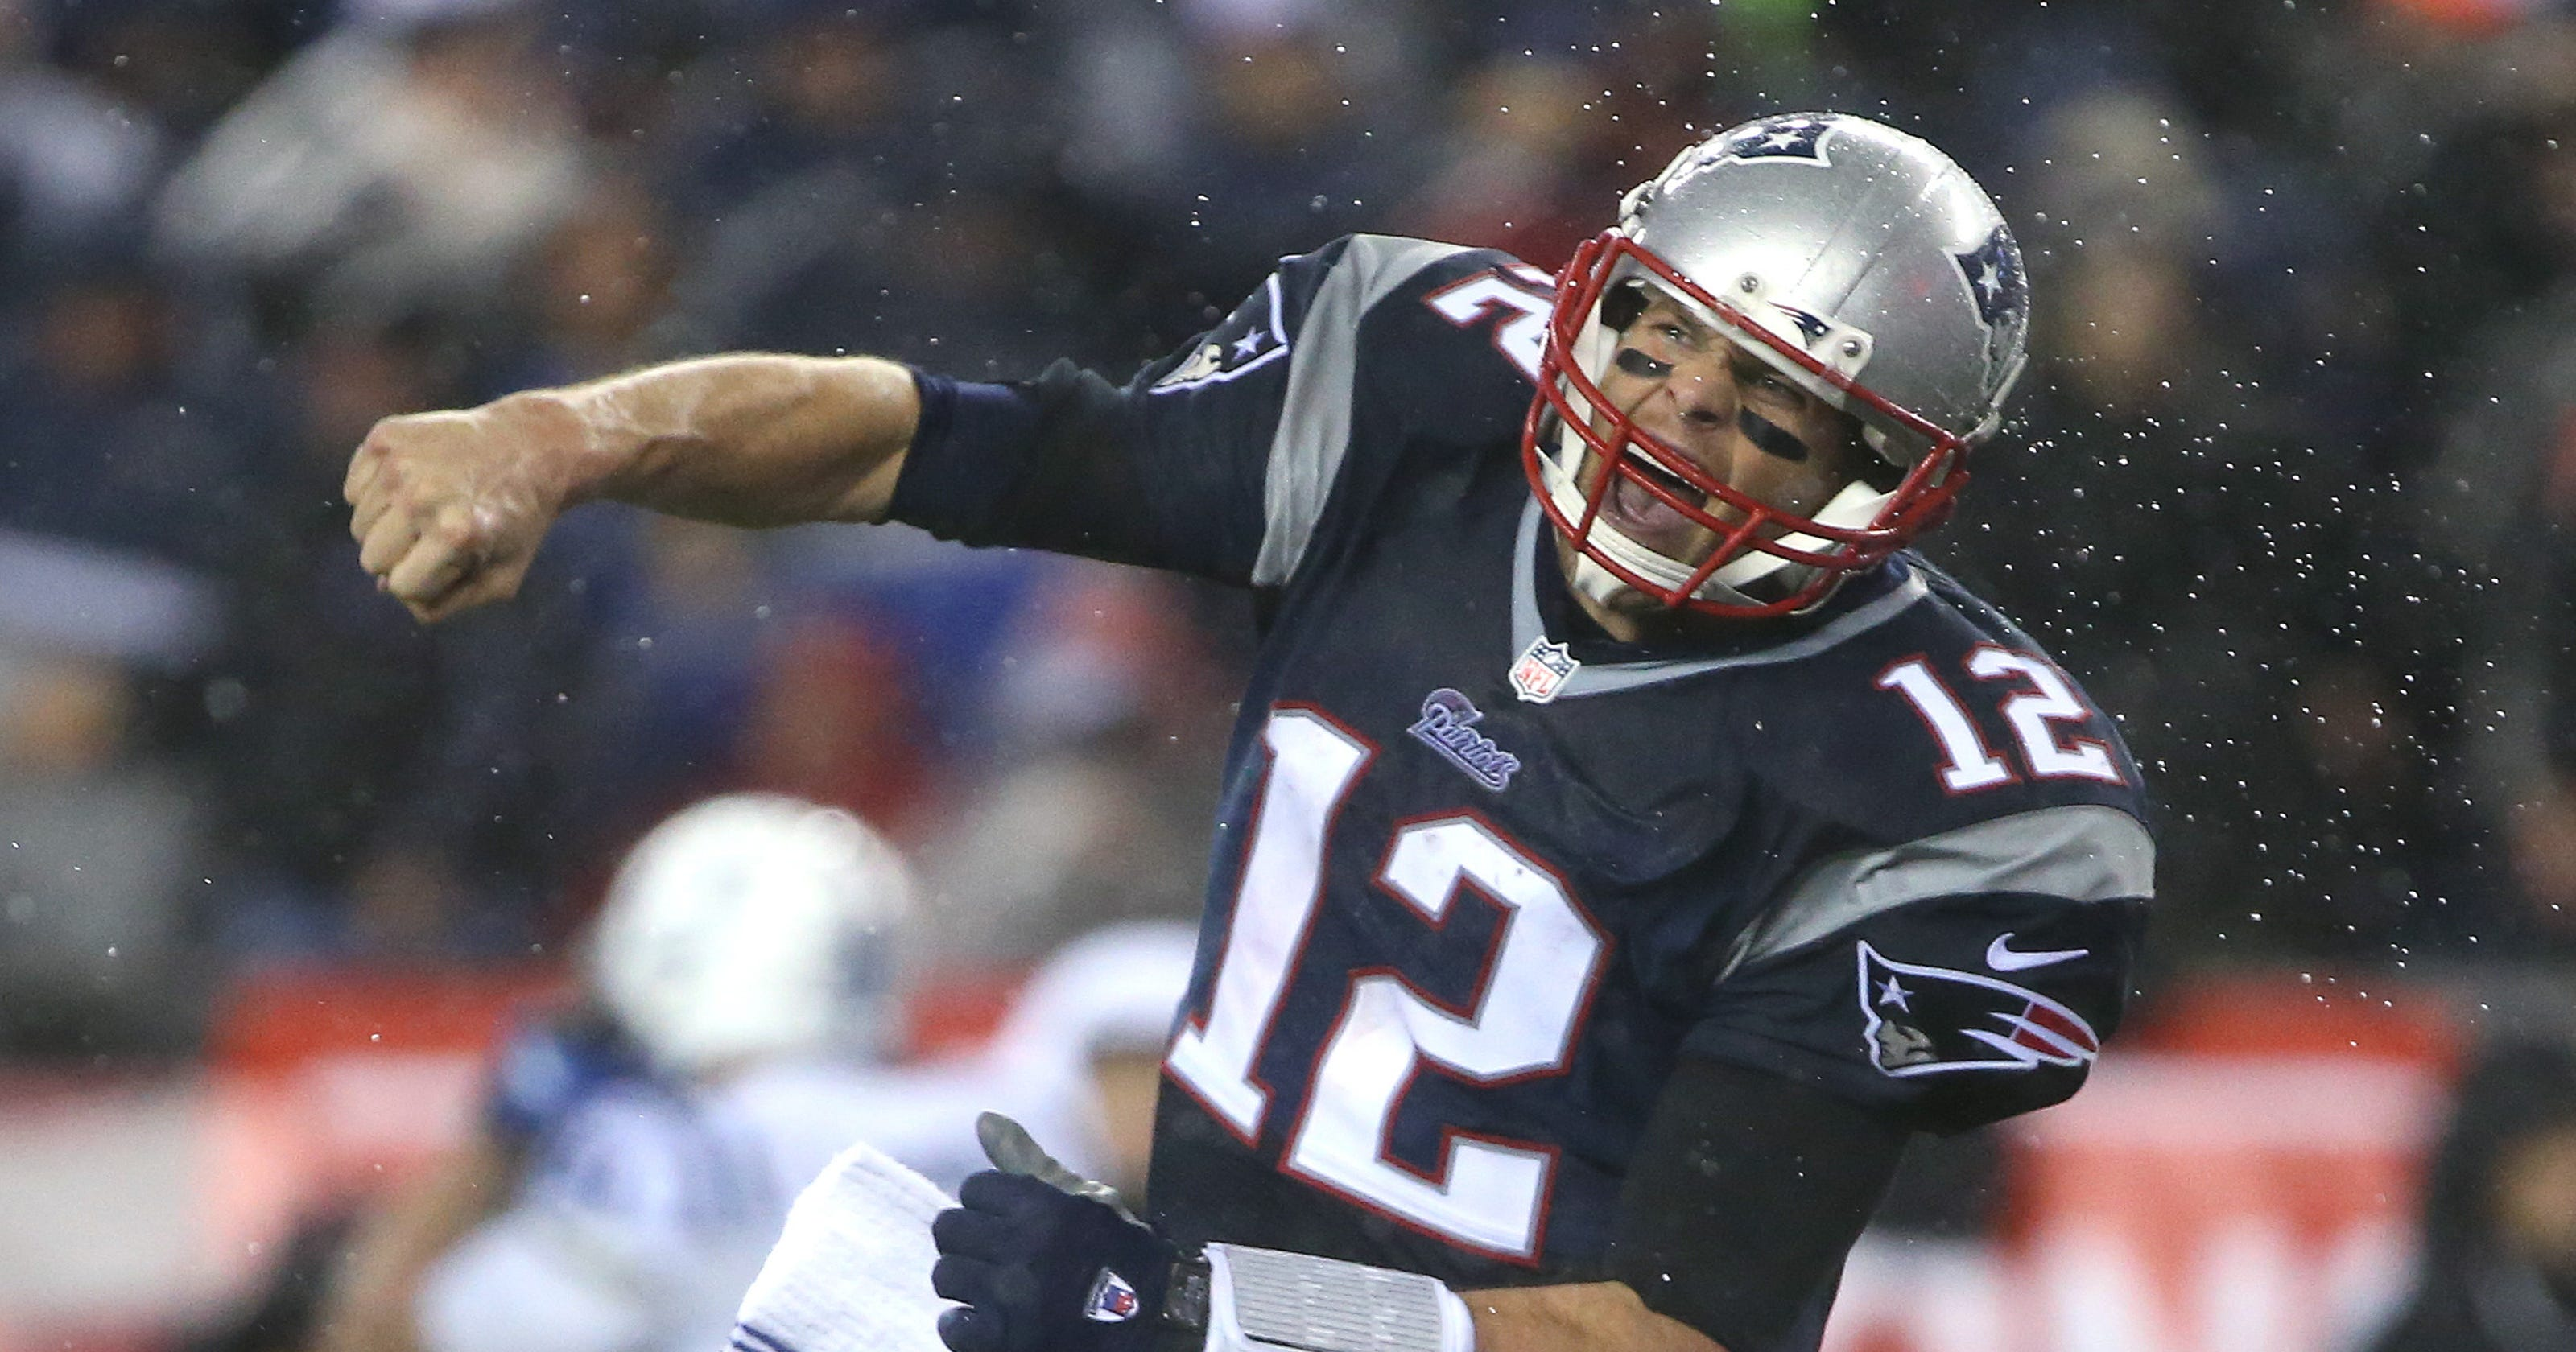 Top 10 reasons Colts fans hate the Patriots  Revisited f1809247d